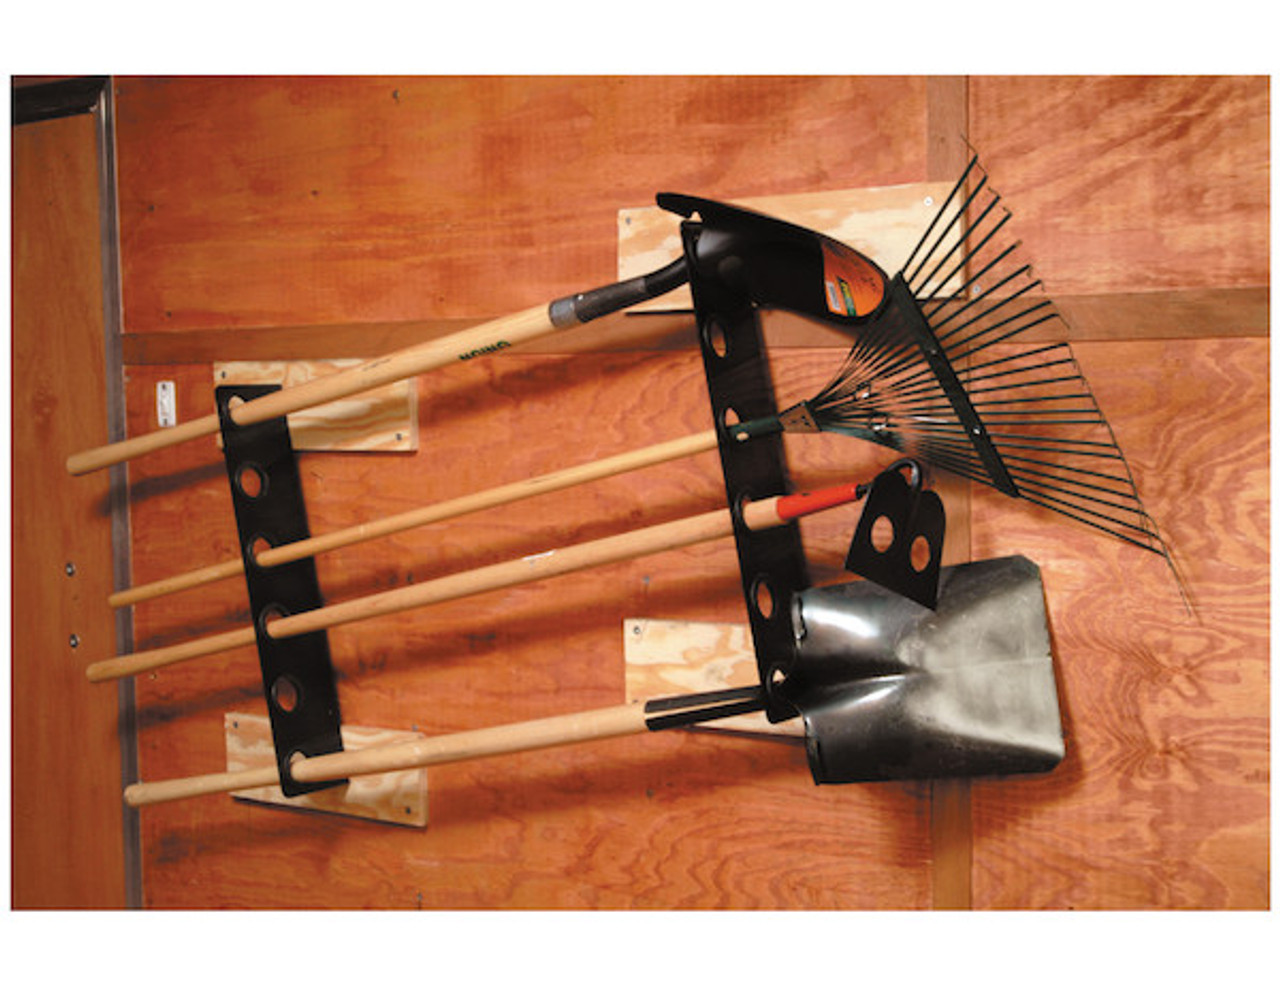 Buyers LT37 Horizontal Hand Tool Rack for Landscaping Trailers, Garages, Sheds, Construction Vehicles Picture # 1